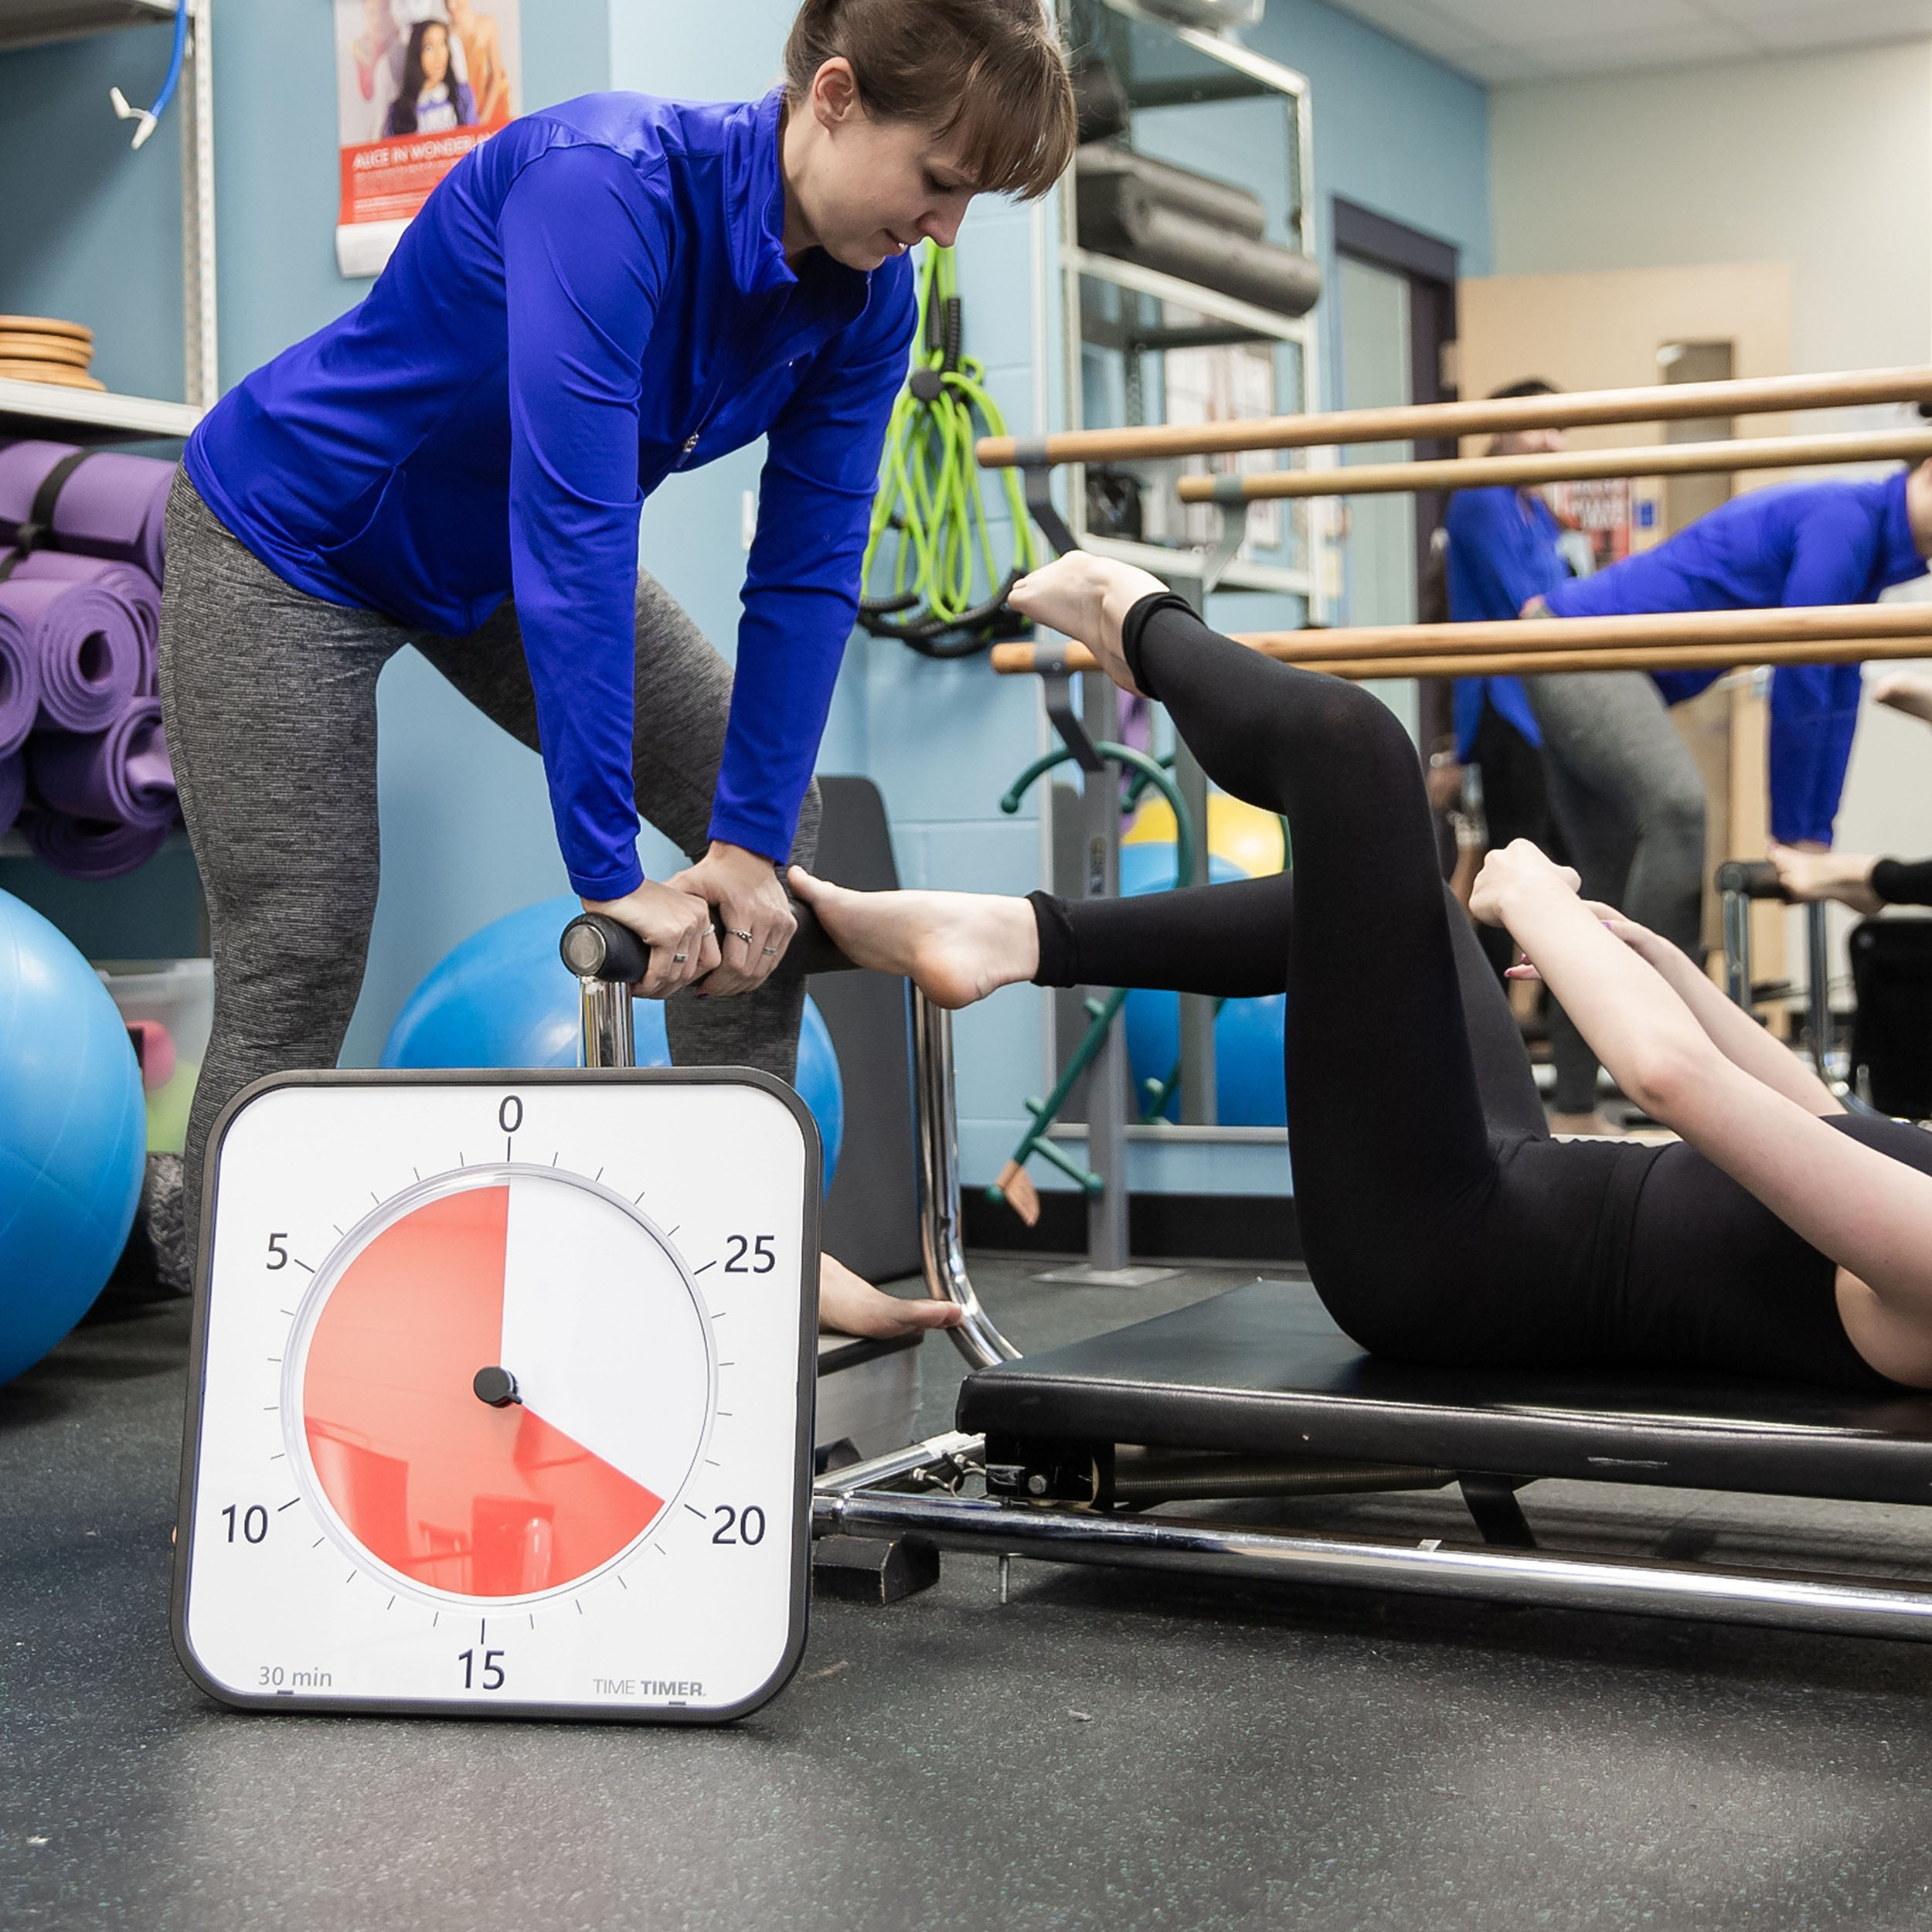 The time timer max even is useful in a physical therapy setting